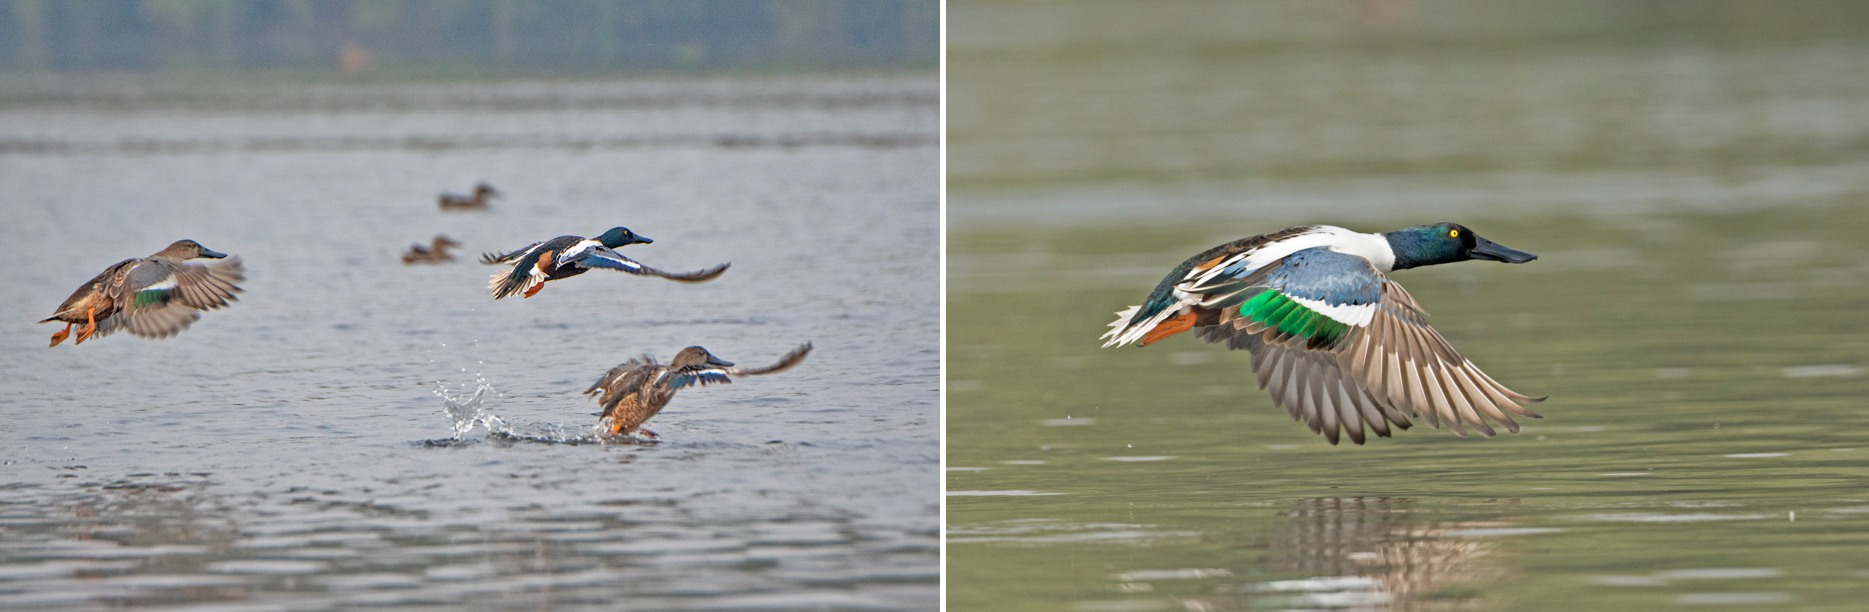 A comparatively large flat bill gives northern shovelers their name. These migratory ducks inhabit northern Asia and Europe during their breeding season. Large congregations are often seen in the waters surrounding Thane Creek in winter. Photos: Shashank Birla (left), Aseem Kothiala (right)